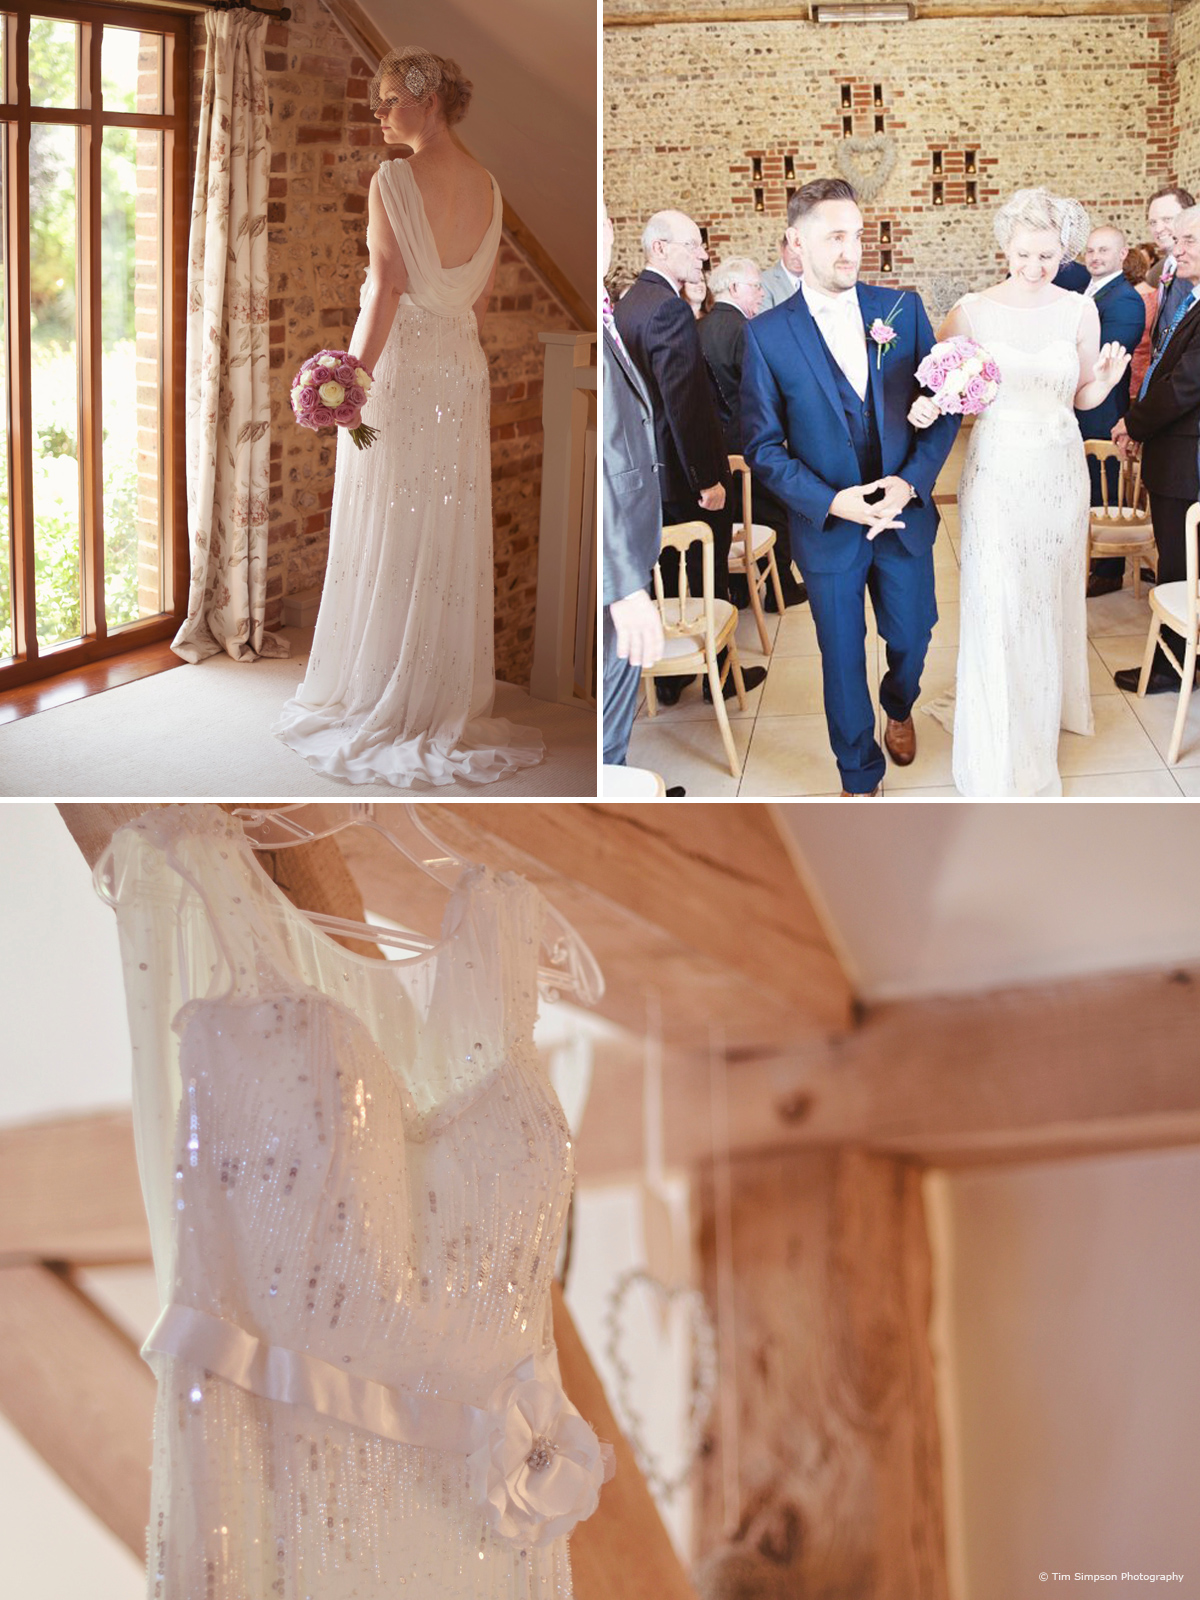 The brides stunning dress at Upwaltham Barns - © Tim Simpson Photography